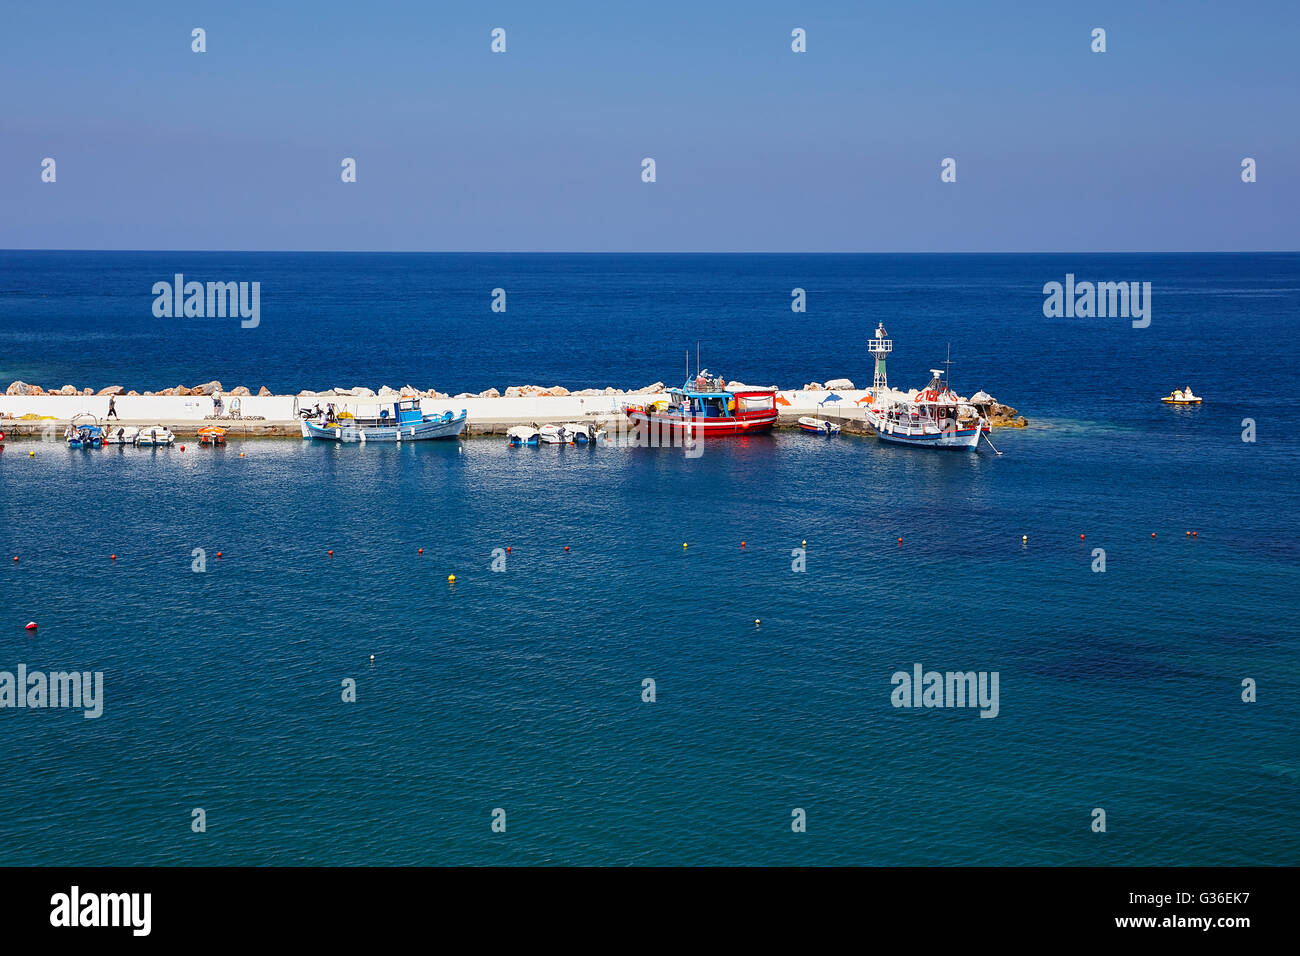 Seacoast at Bali on the Crete island in summer - Stock Image